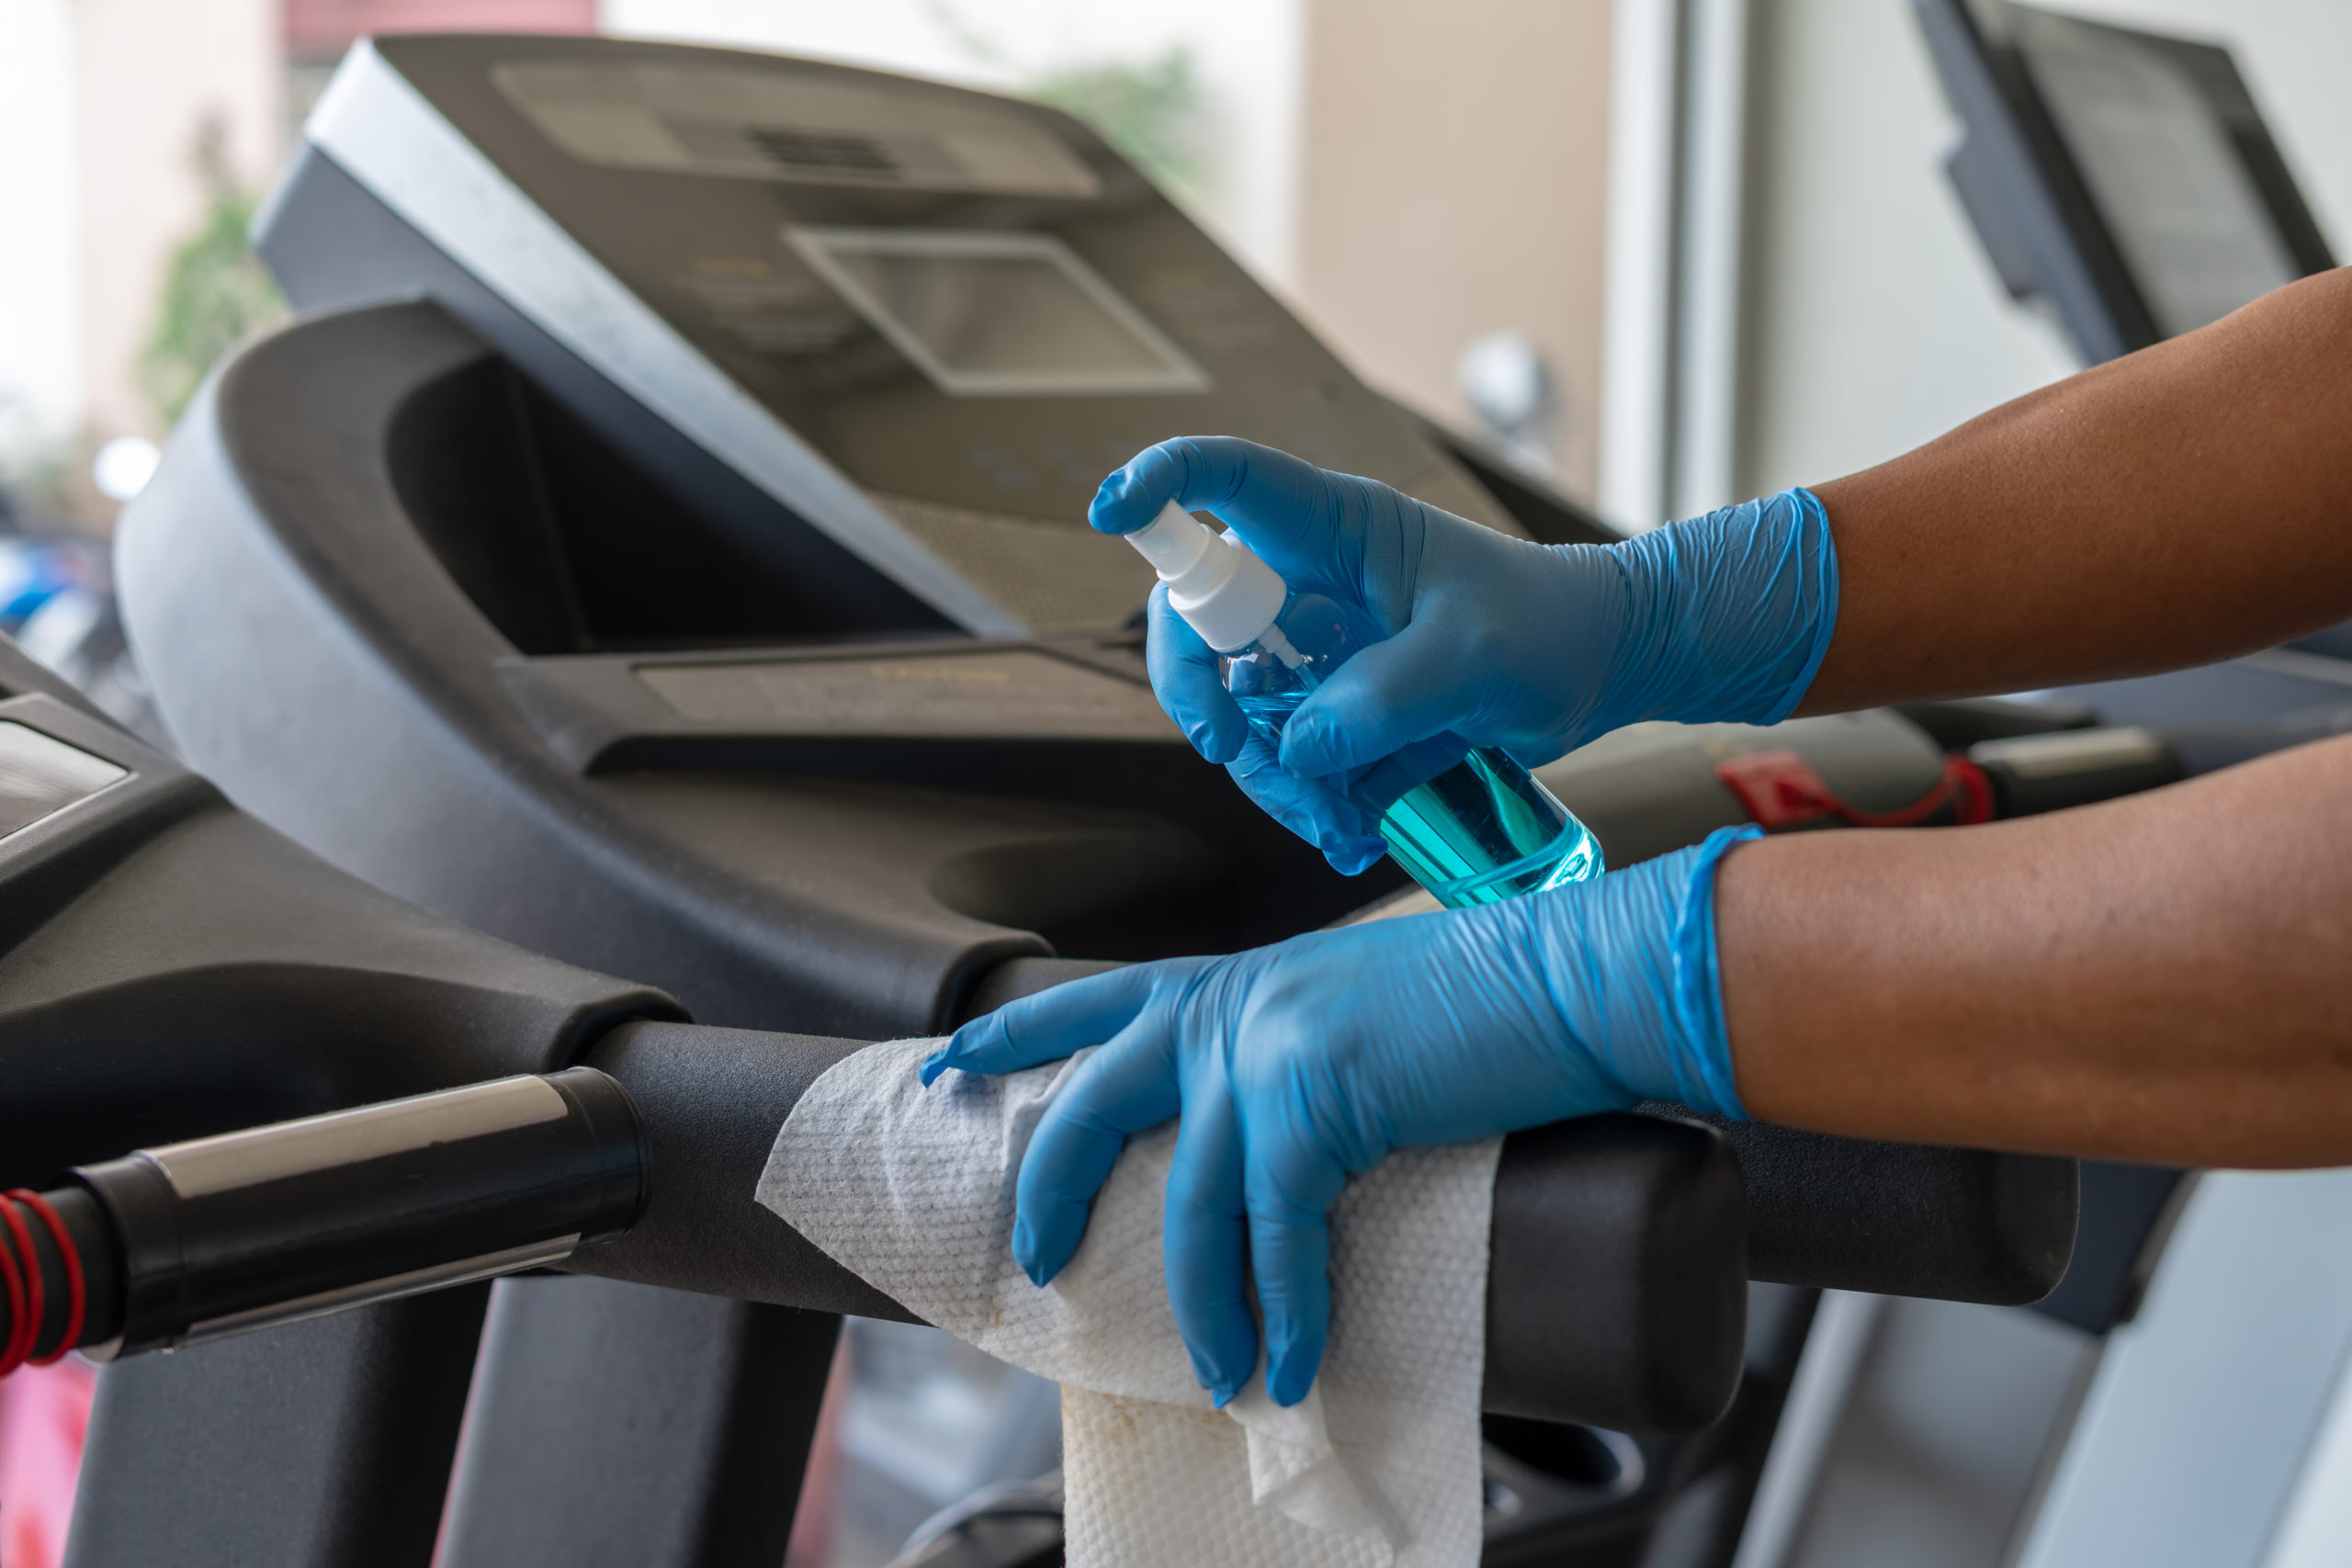 Practicing Good Hygiene in the Gym - Fitness Nation